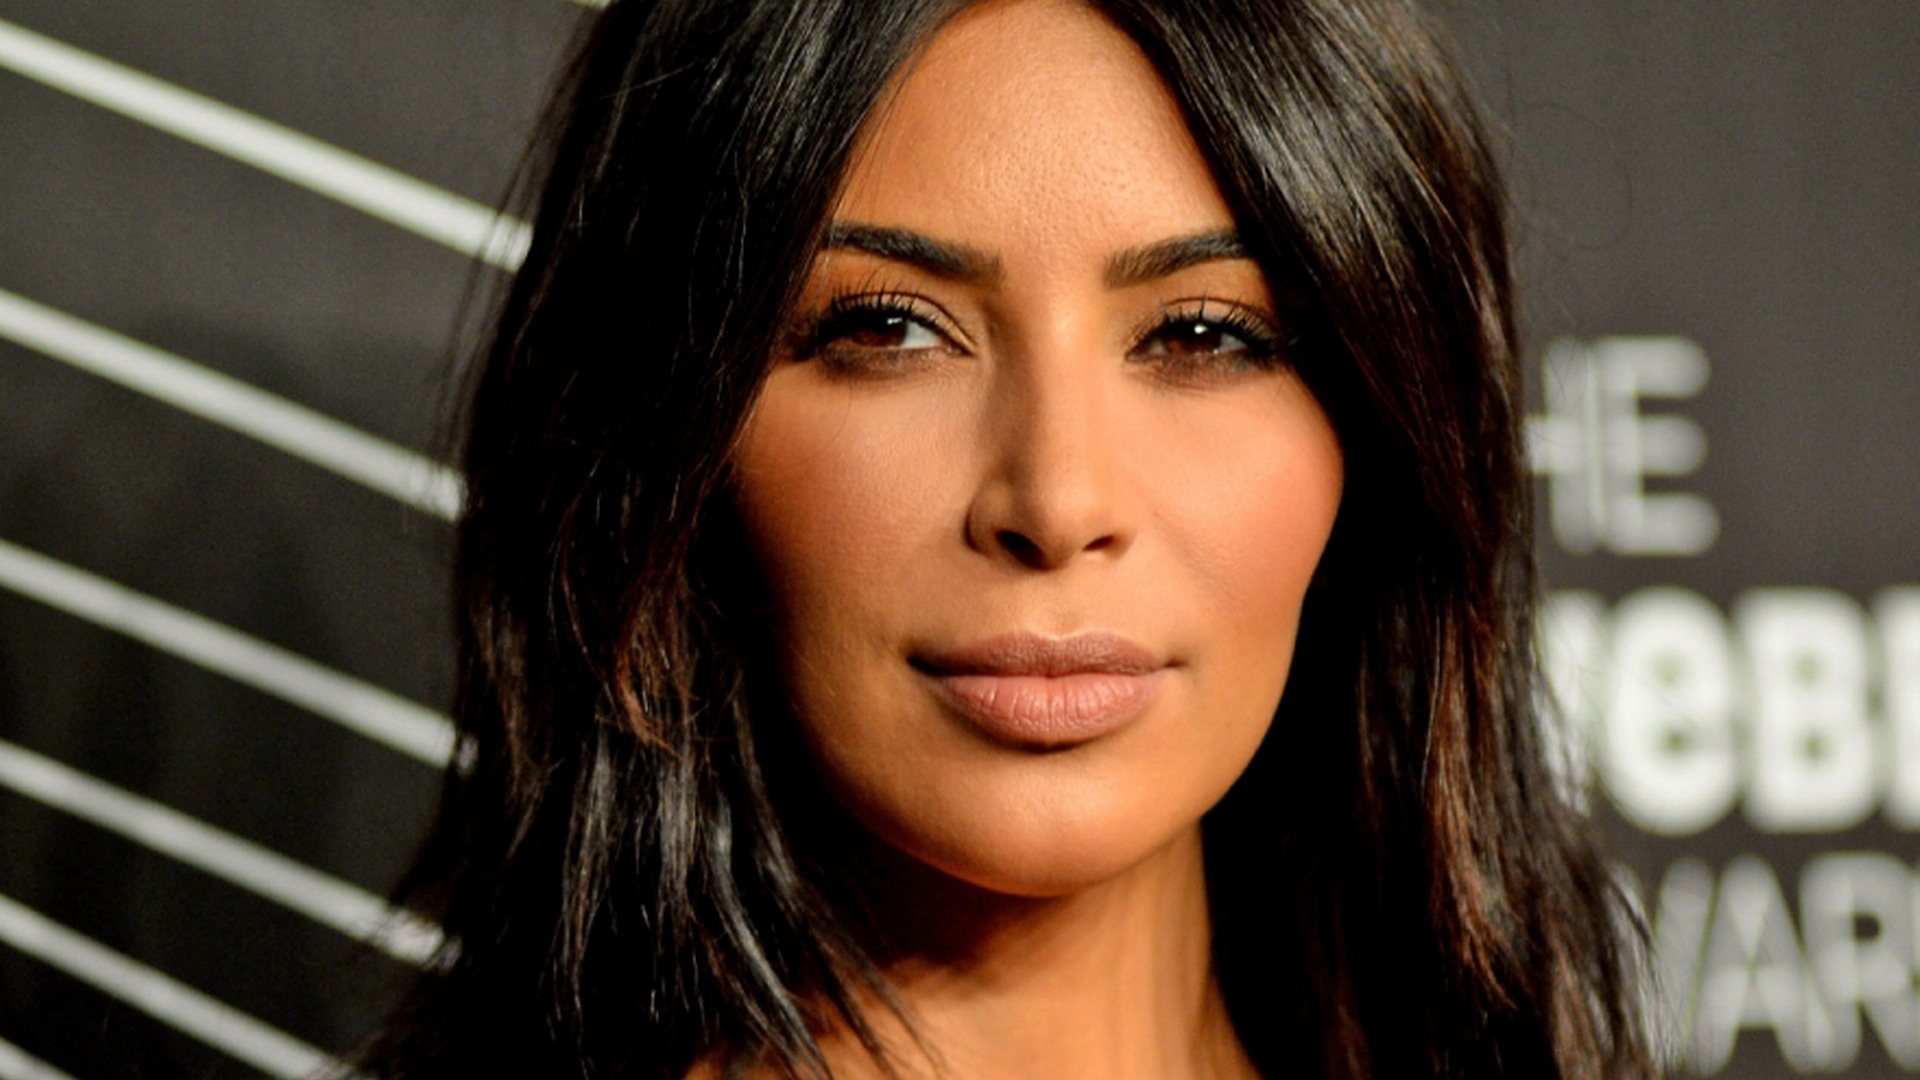 kim kardashian wallpapers images photos pictures backgrounds